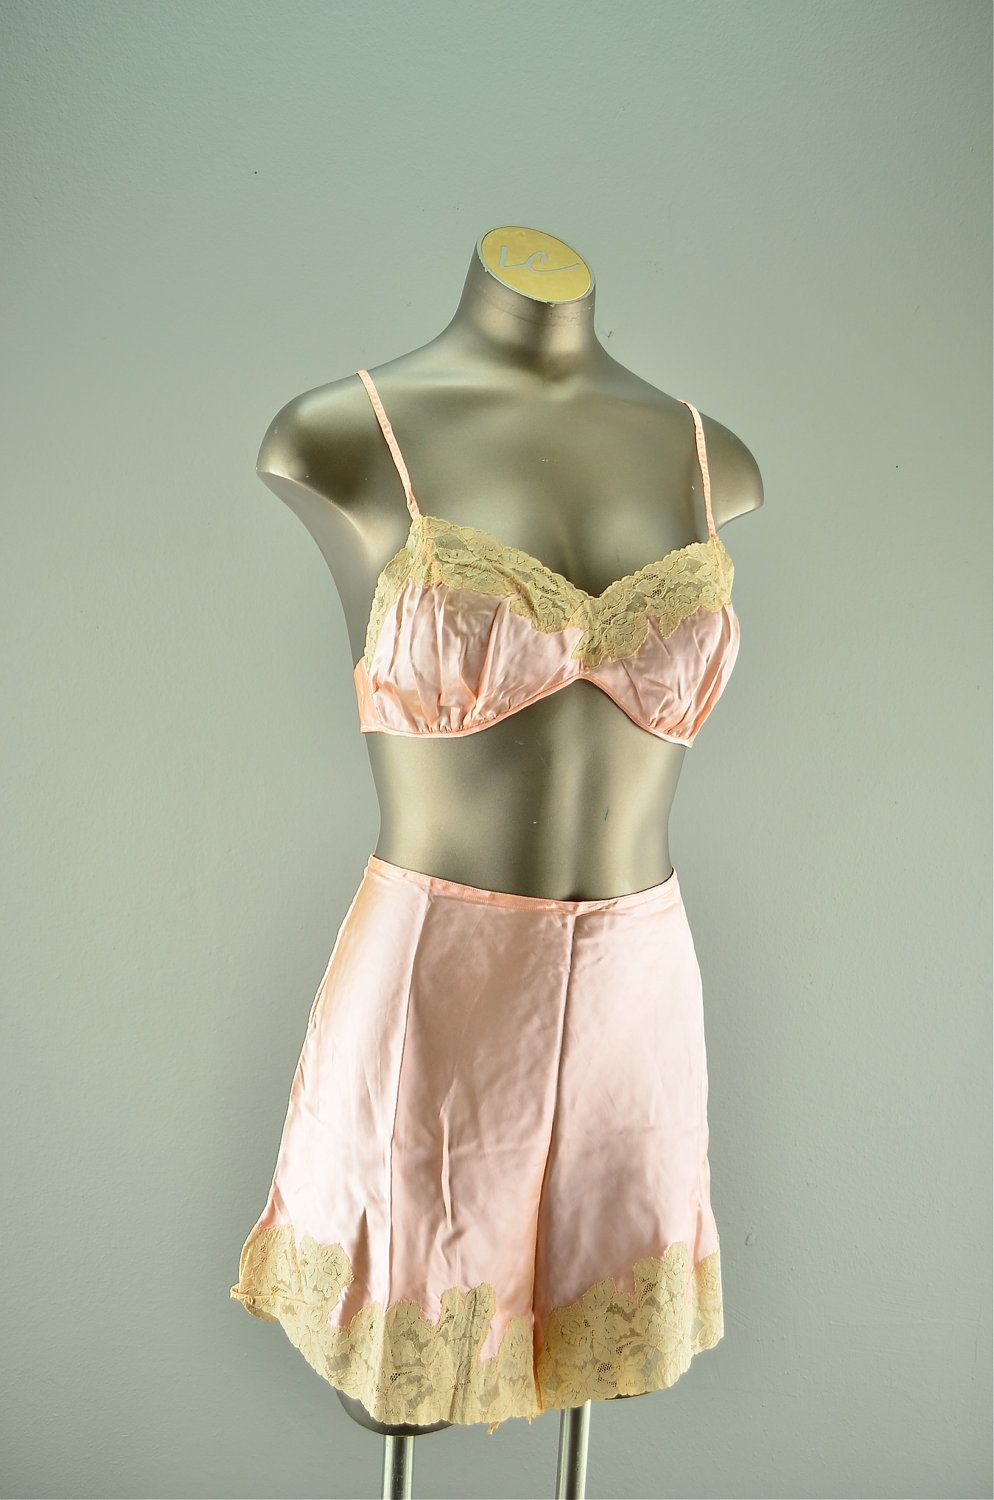 1930s silk bra and undies   Vintage lingerie   30s peach brassiere and tap  shorts.  108.00 3fcb29b3f